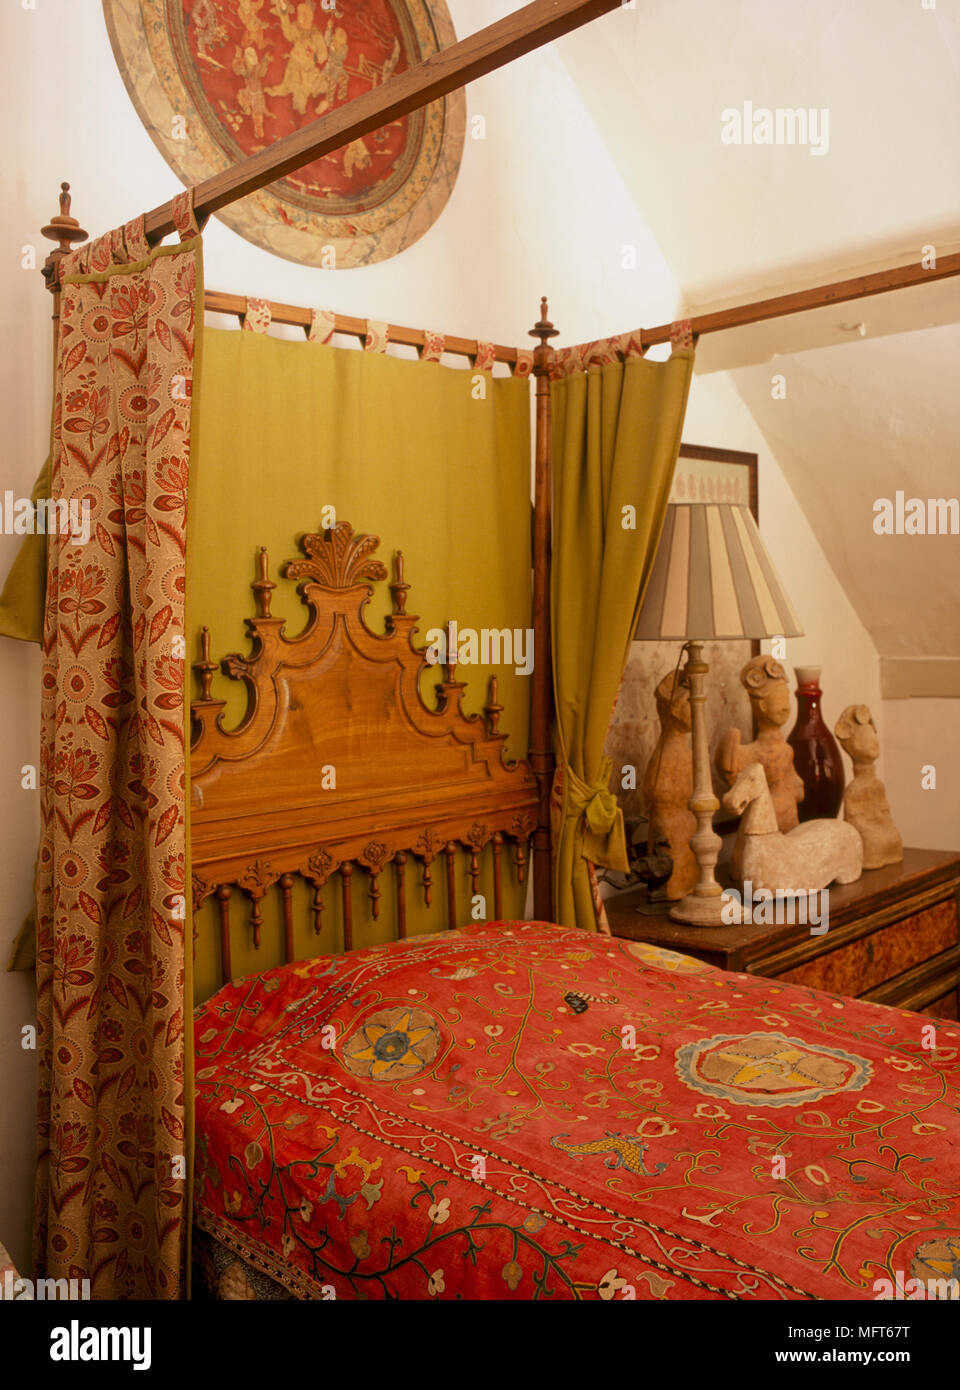 A Traditional Bedroom Four Poster Bed With Red Pattern Drapes And Bedcover Carved Wooden Headboard Bedside Table With Pottery Artifacts Stock Photo Alamy